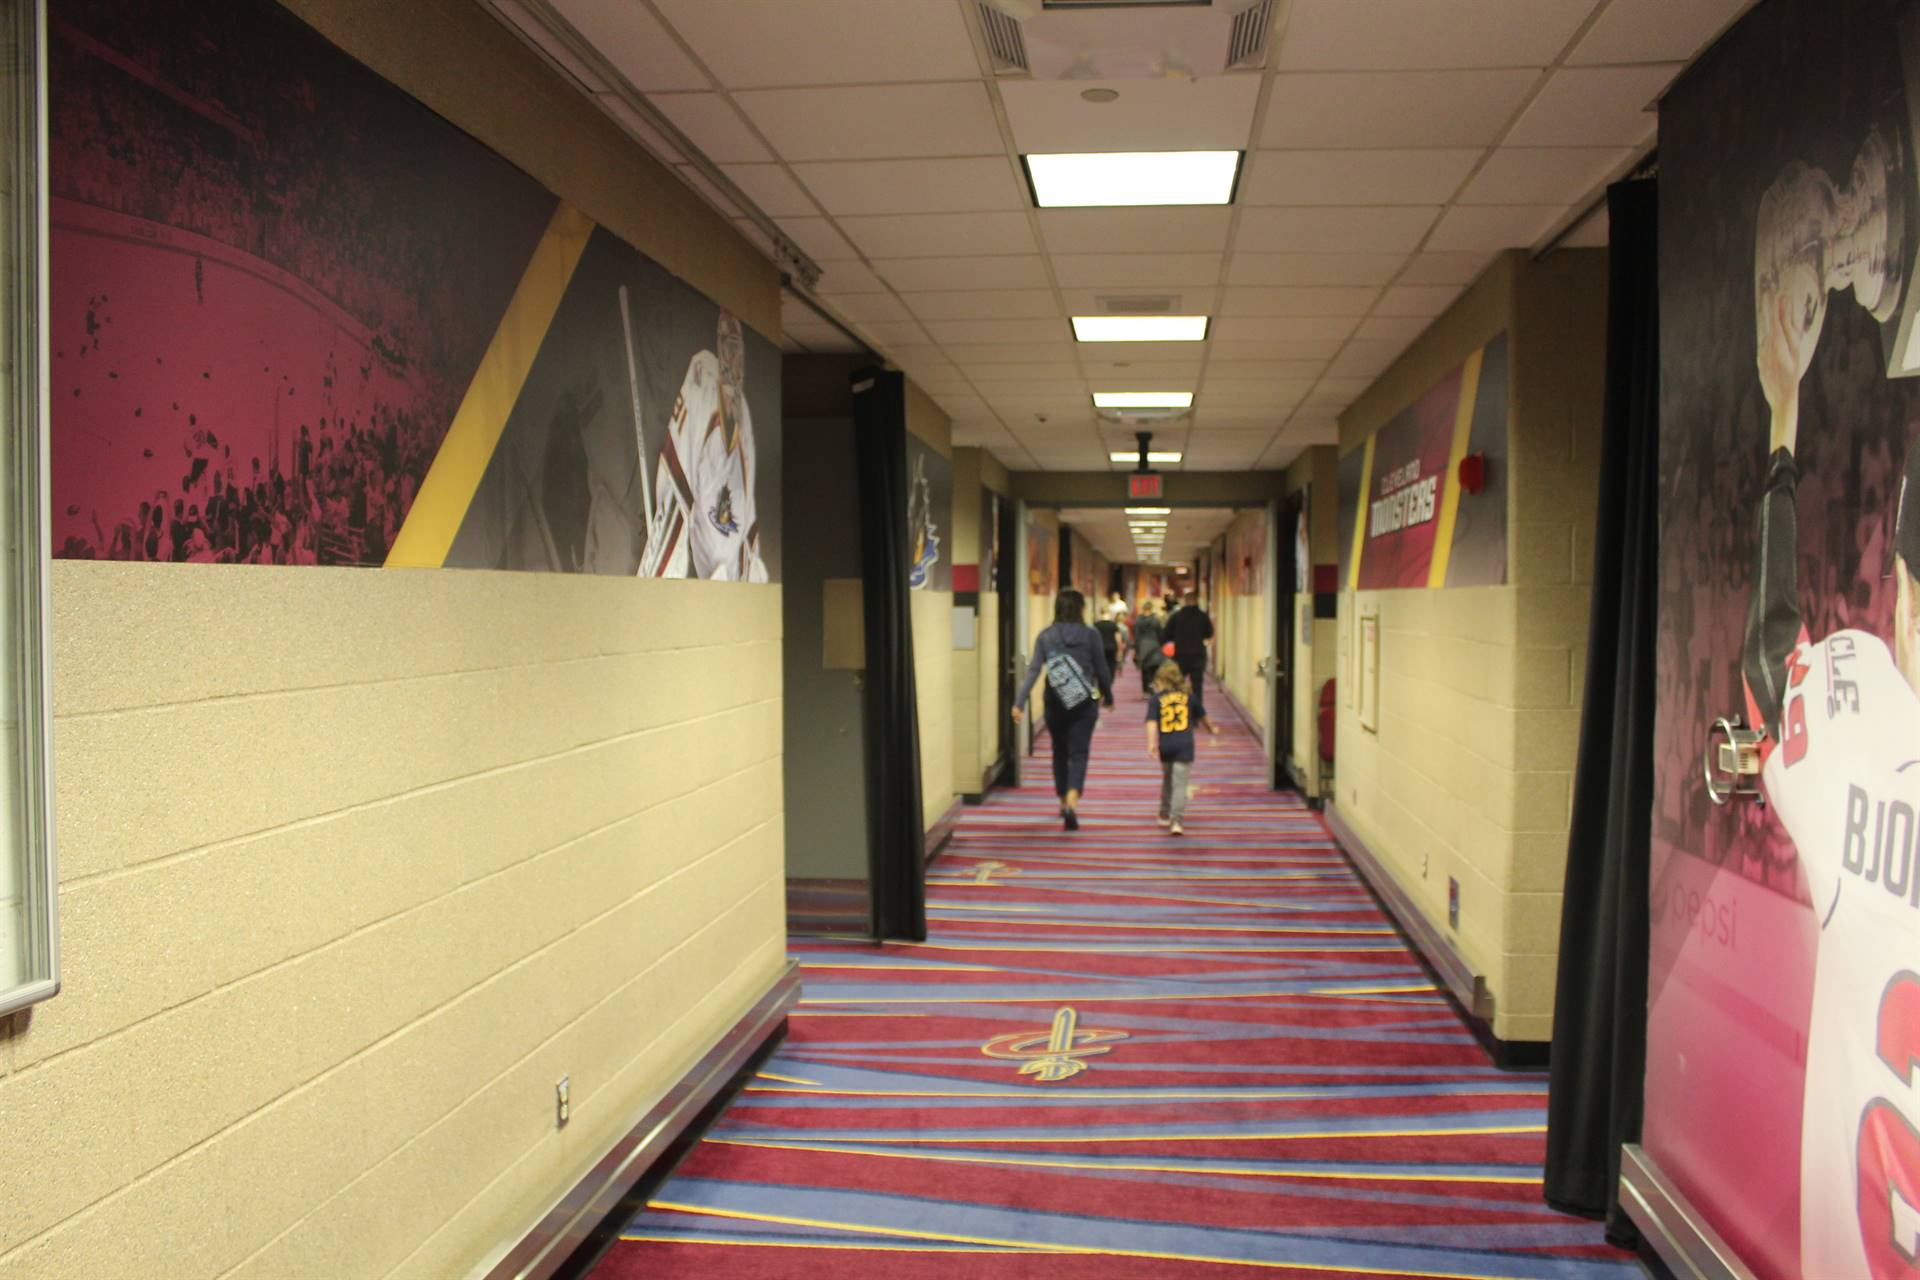 Hallway to the Locker room